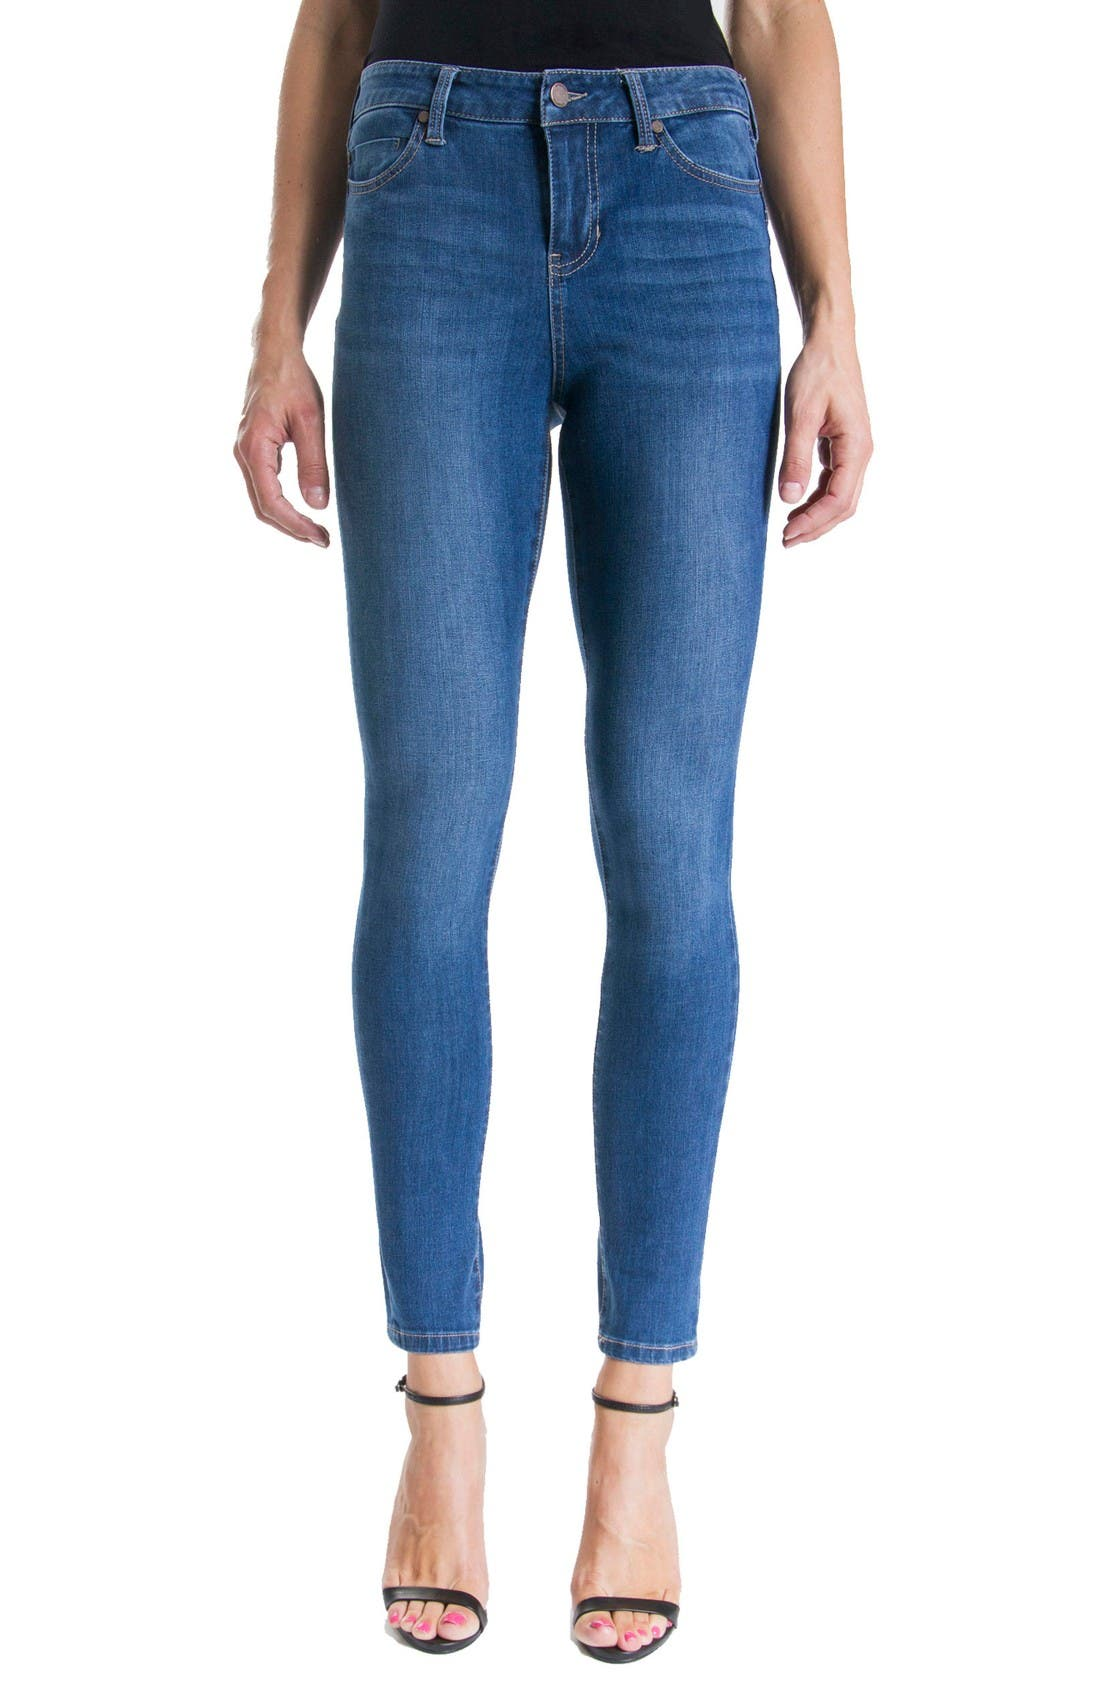 Alternate Image 1 Selected - Liverpool Jeans Company Piper Hugger Lift Sculpt Ankle Skinny Jeans (Hydra)